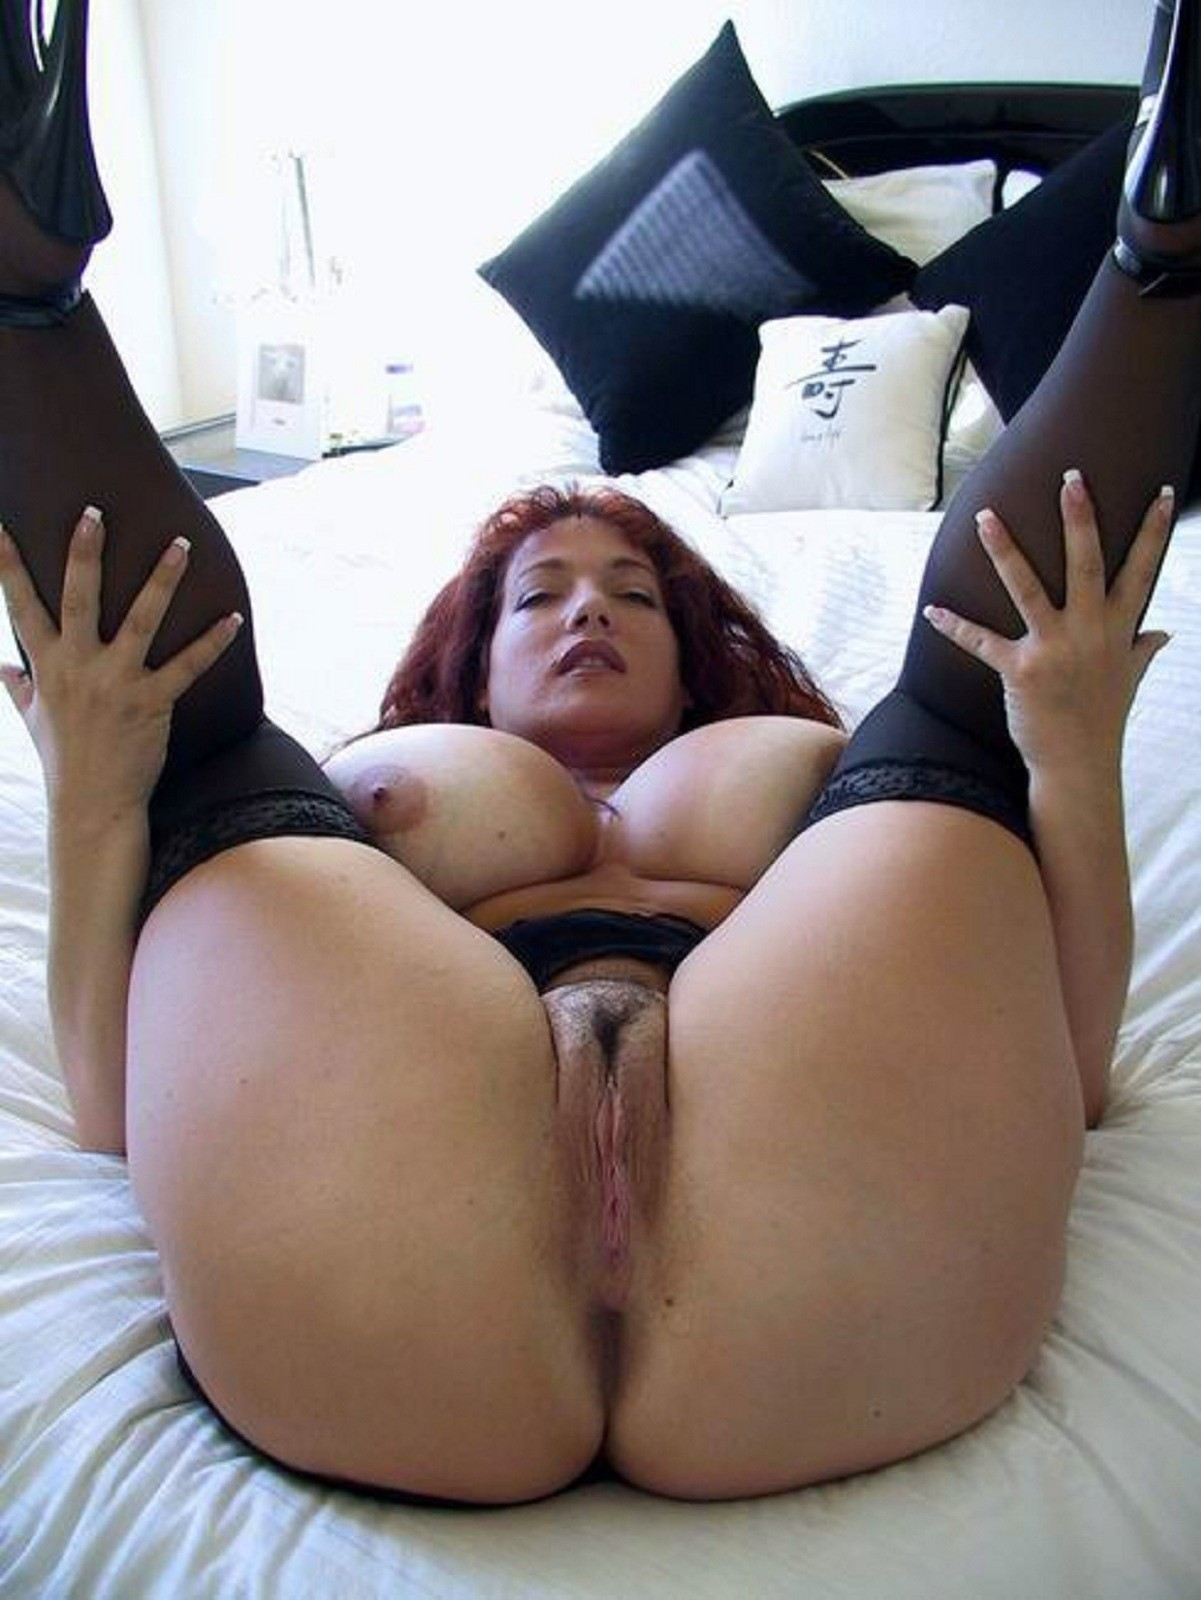 Are not nude huge thigh black bbw spread pussy gallery absolutely agree